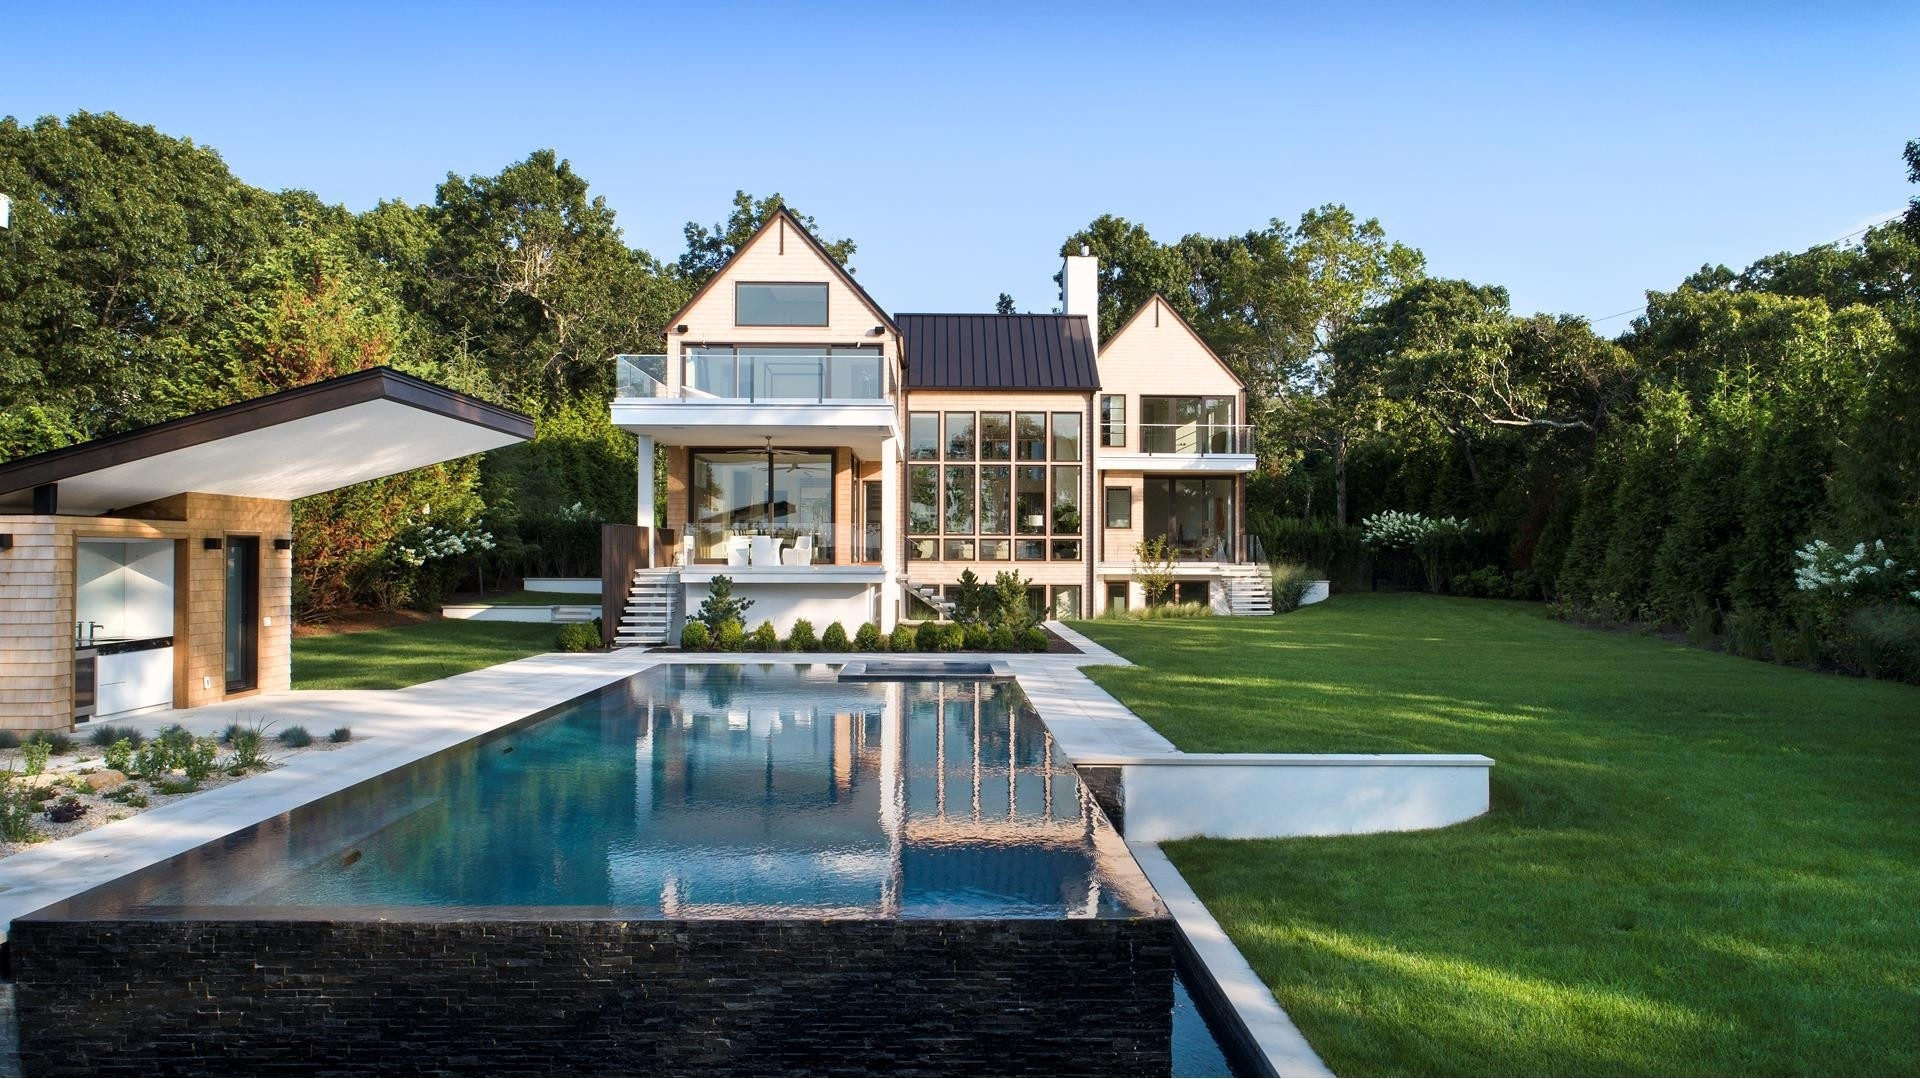 2. Single Family Homes for Sale at Sag Harbor Village, Sag Harbor, NY 11963